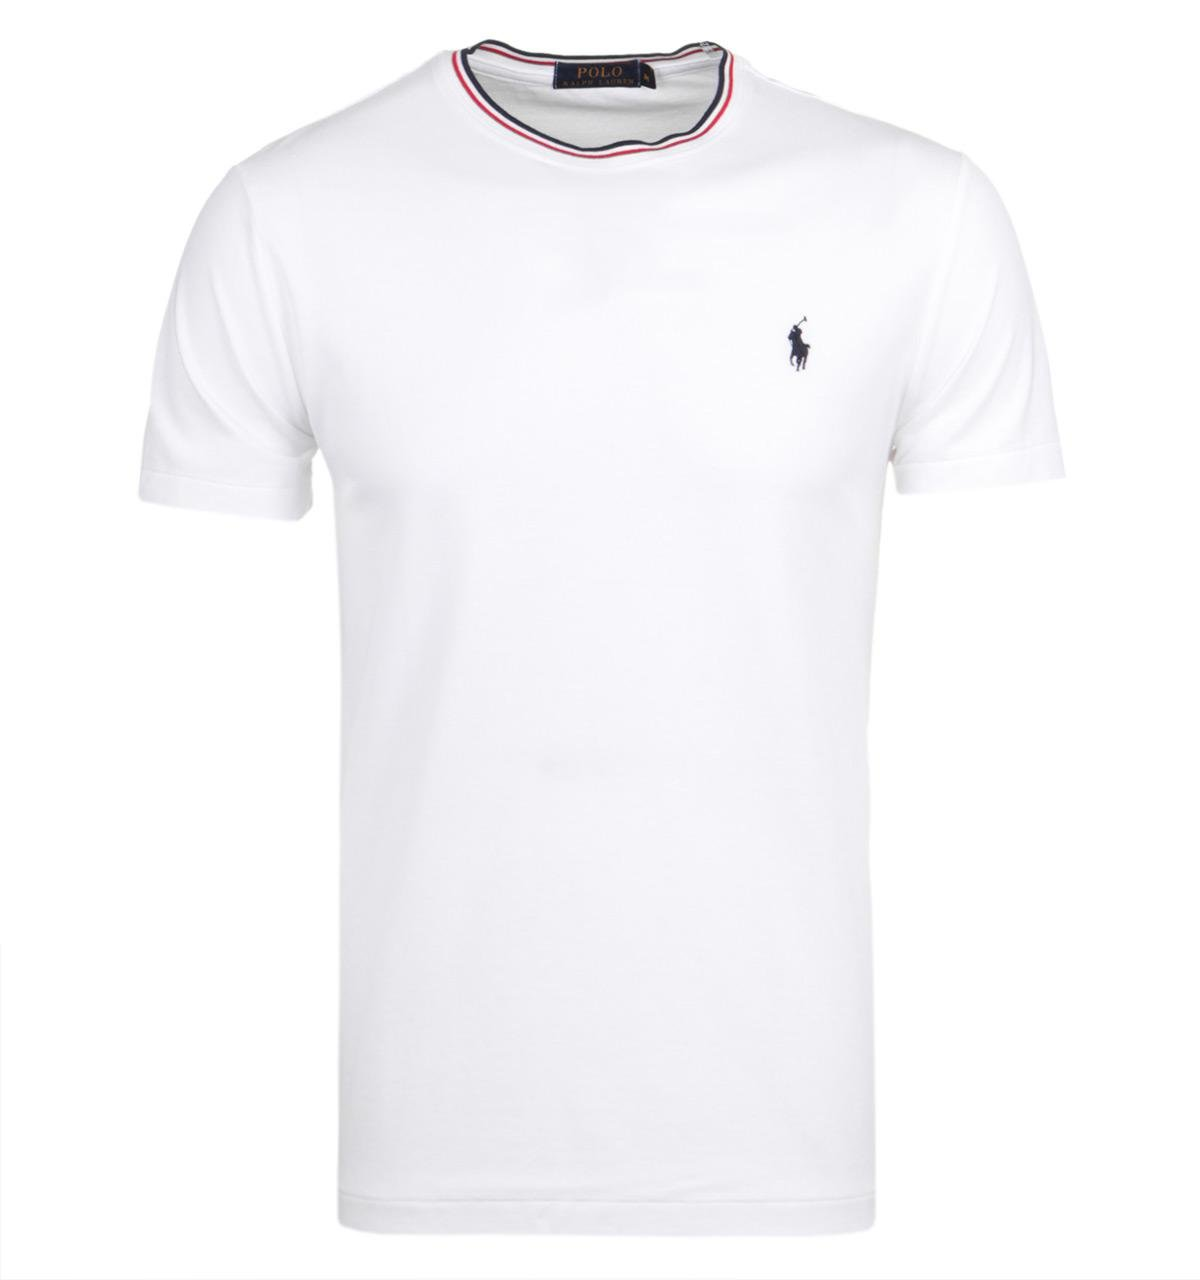 lyst polo ralph lauren white tipped short sleeve pique t shirt in white for men. Black Bedroom Furniture Sets. Home Design Ideas